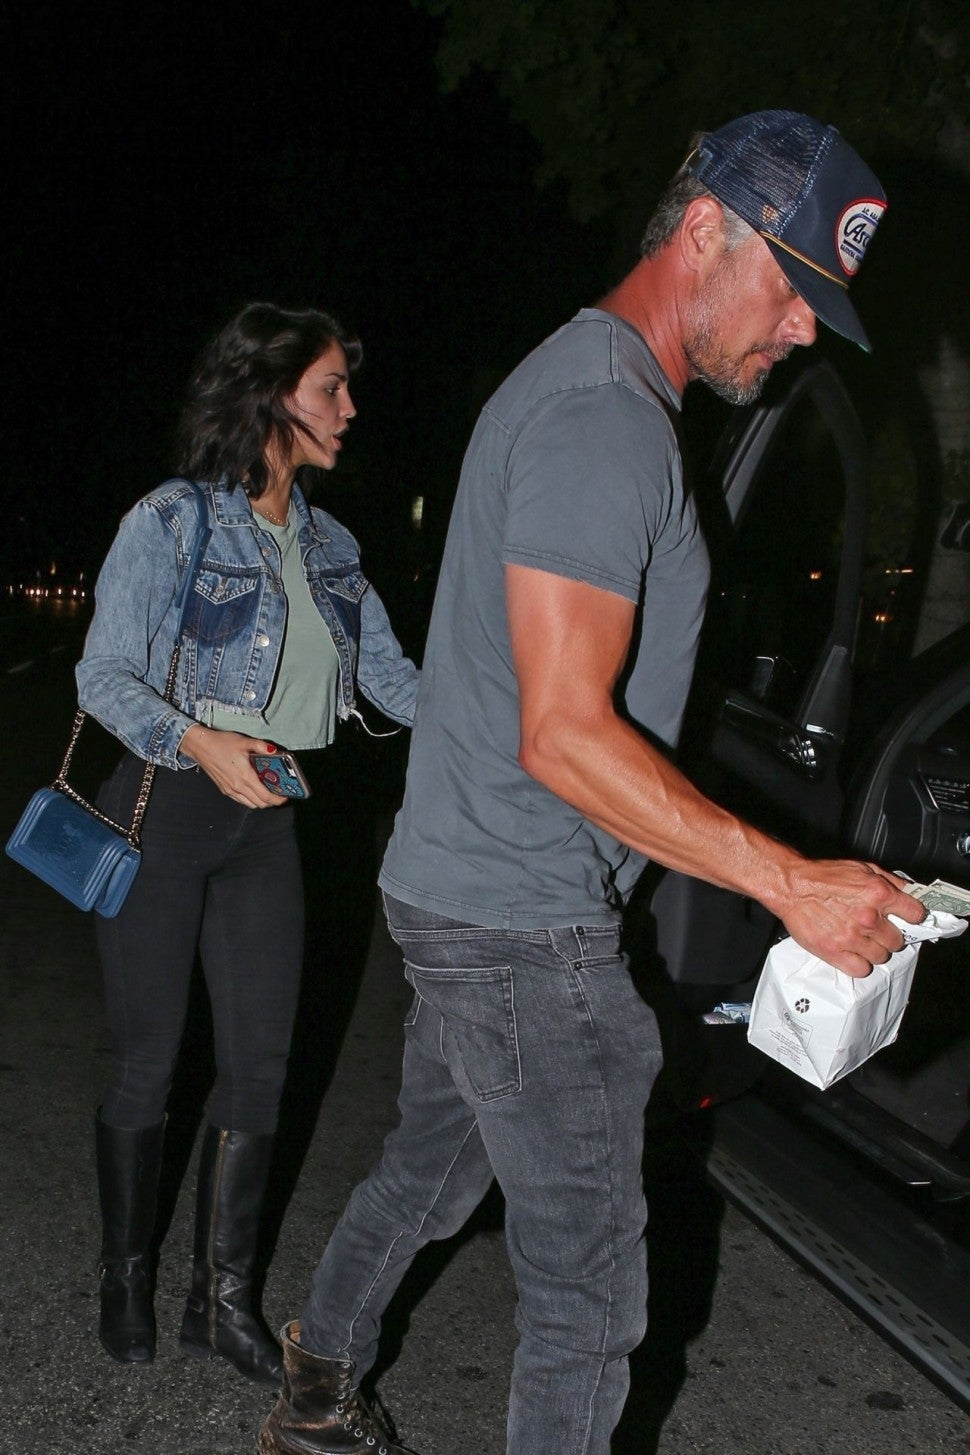 Josh Duhamel goes on a second date with Eiza Gonzalez